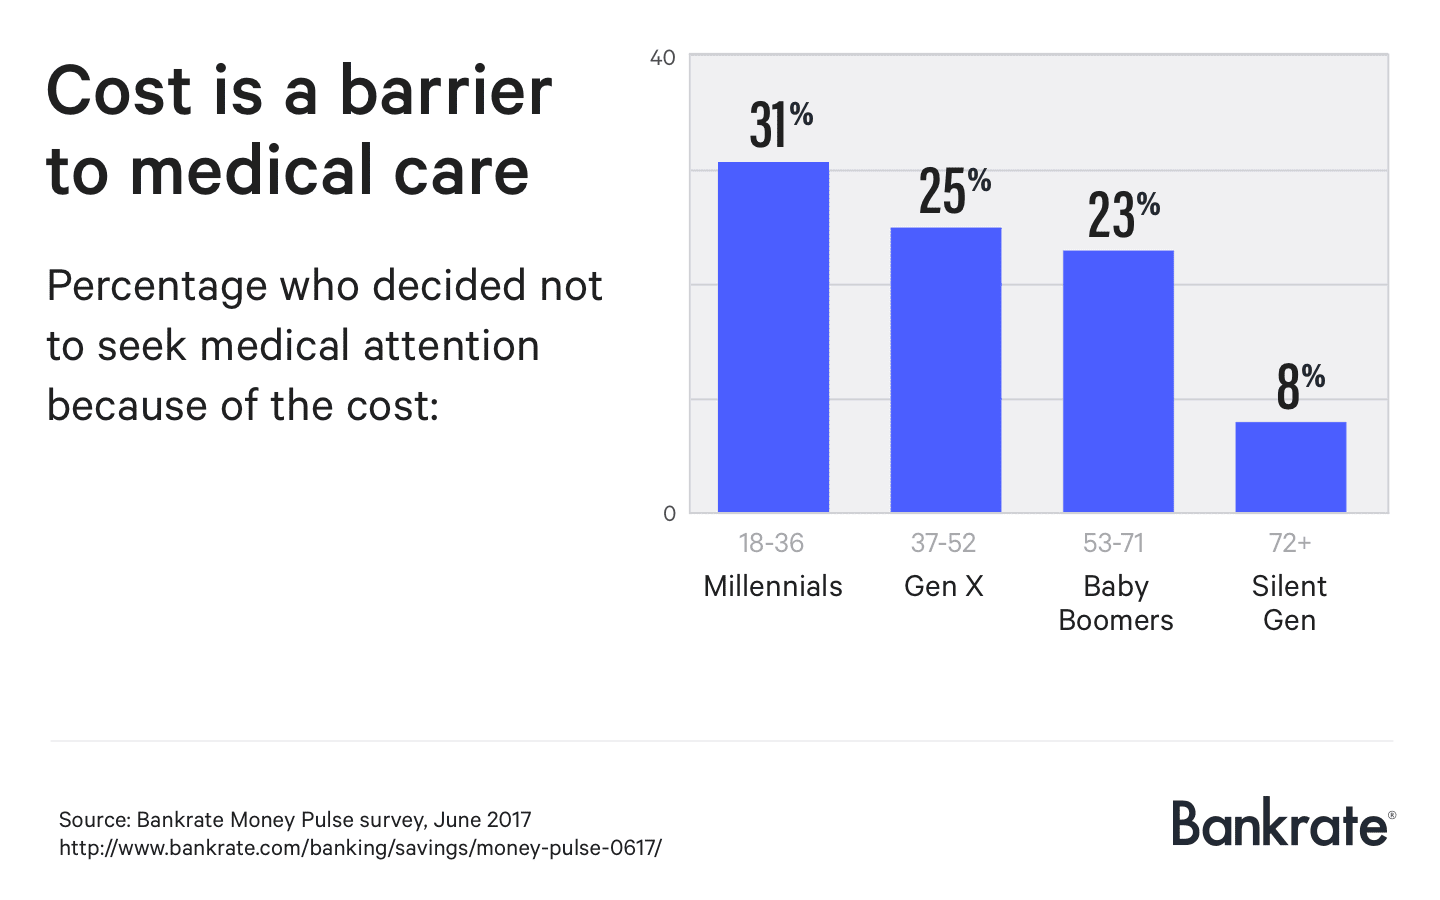 barriers erected by health care systems Access to health services means the timely use of personal health services to achieve the best health outcomes 1 it requires 3 distinct steps: gaining entry into the health care system (usually through insurance coverage.